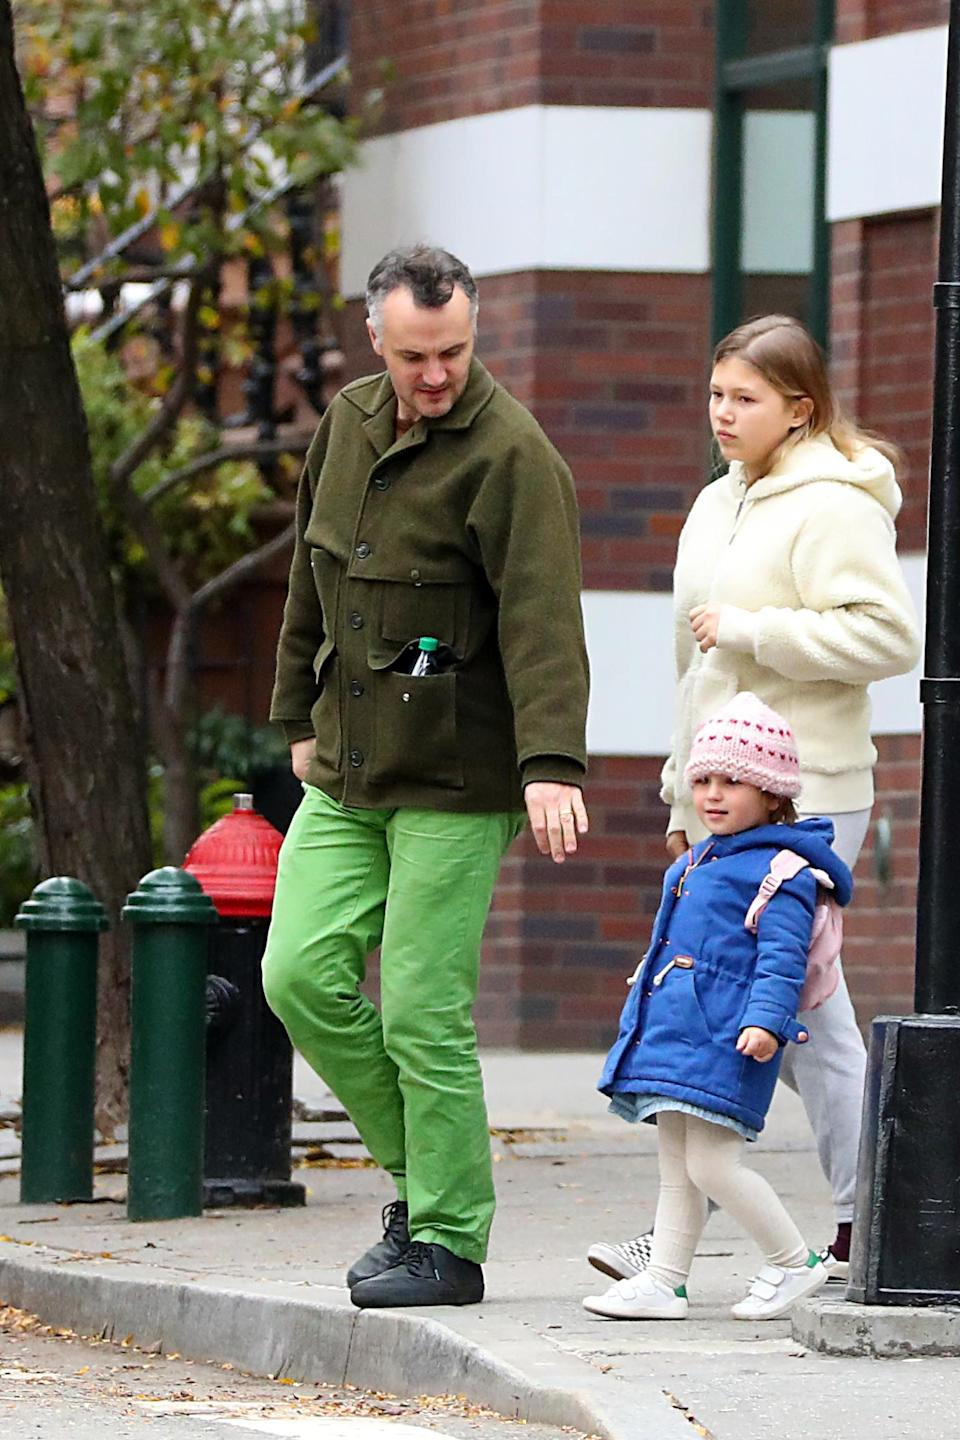 Michelle Williams and Heath Ledger's daughter Matilda Rose Ledger looks just like her Heath while spotted out with her new stepdad and stepsister. Source: MEGA